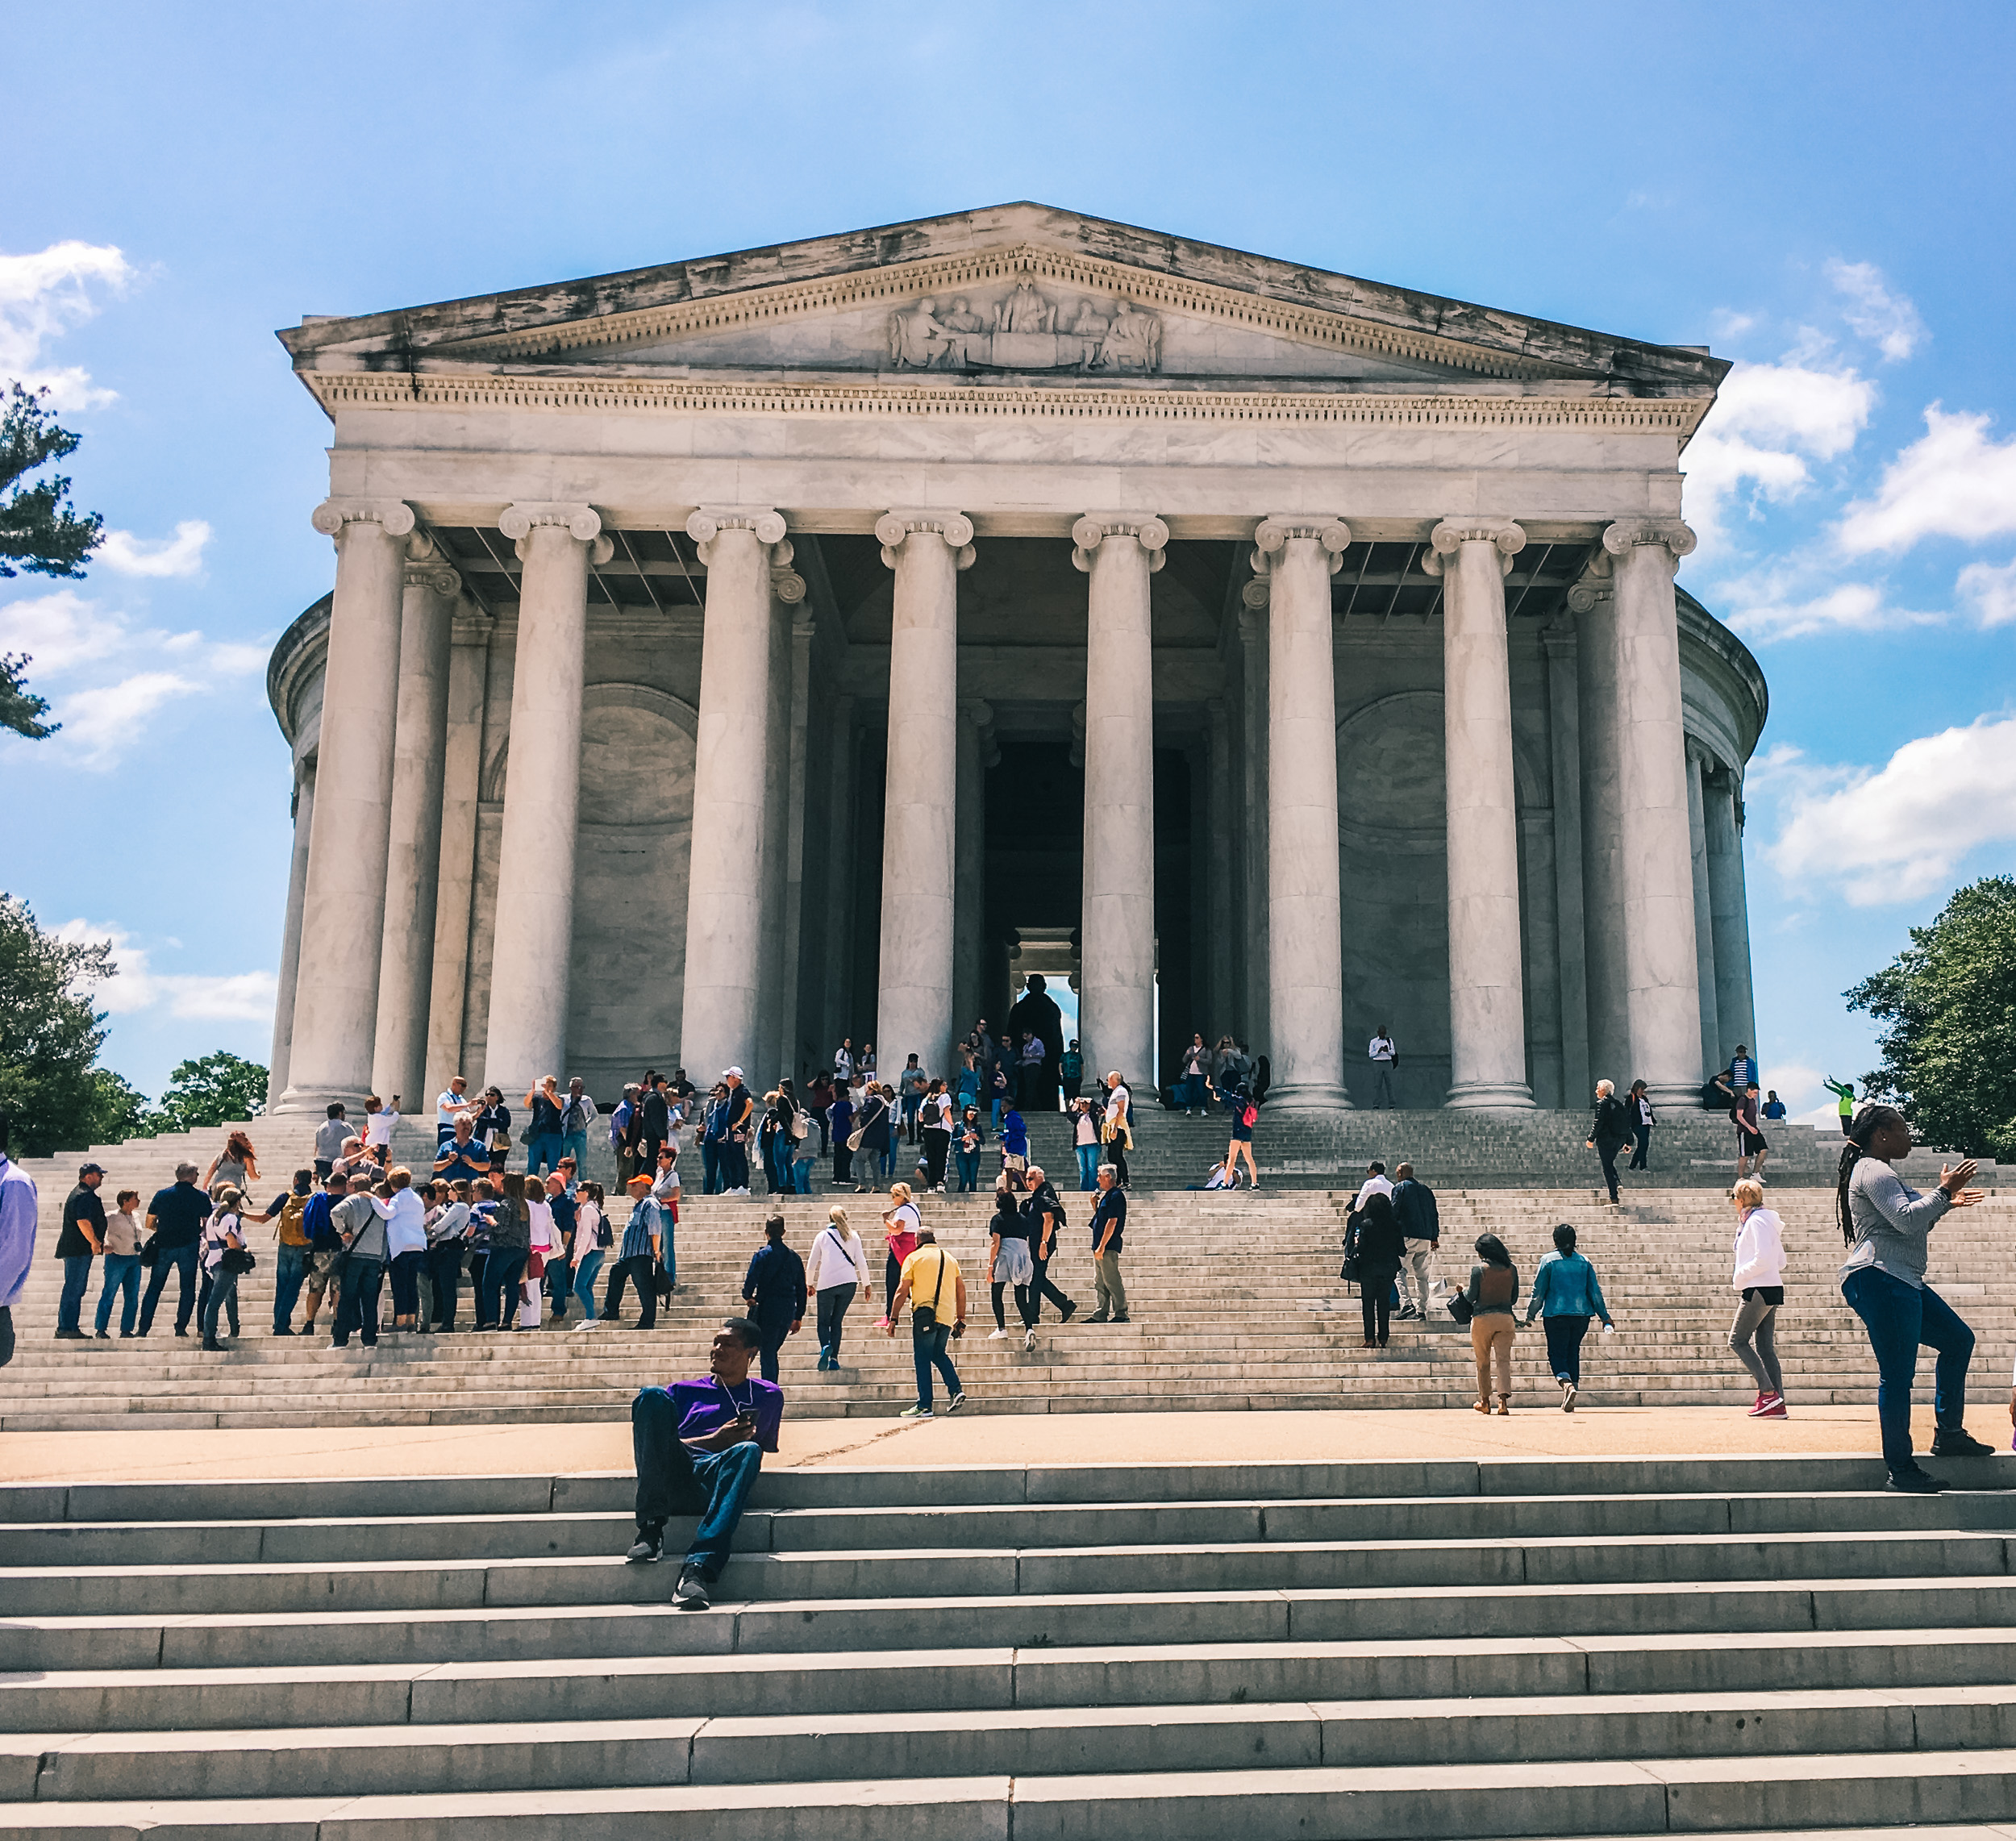 Washington DC Memorials, Jefferson Memorial